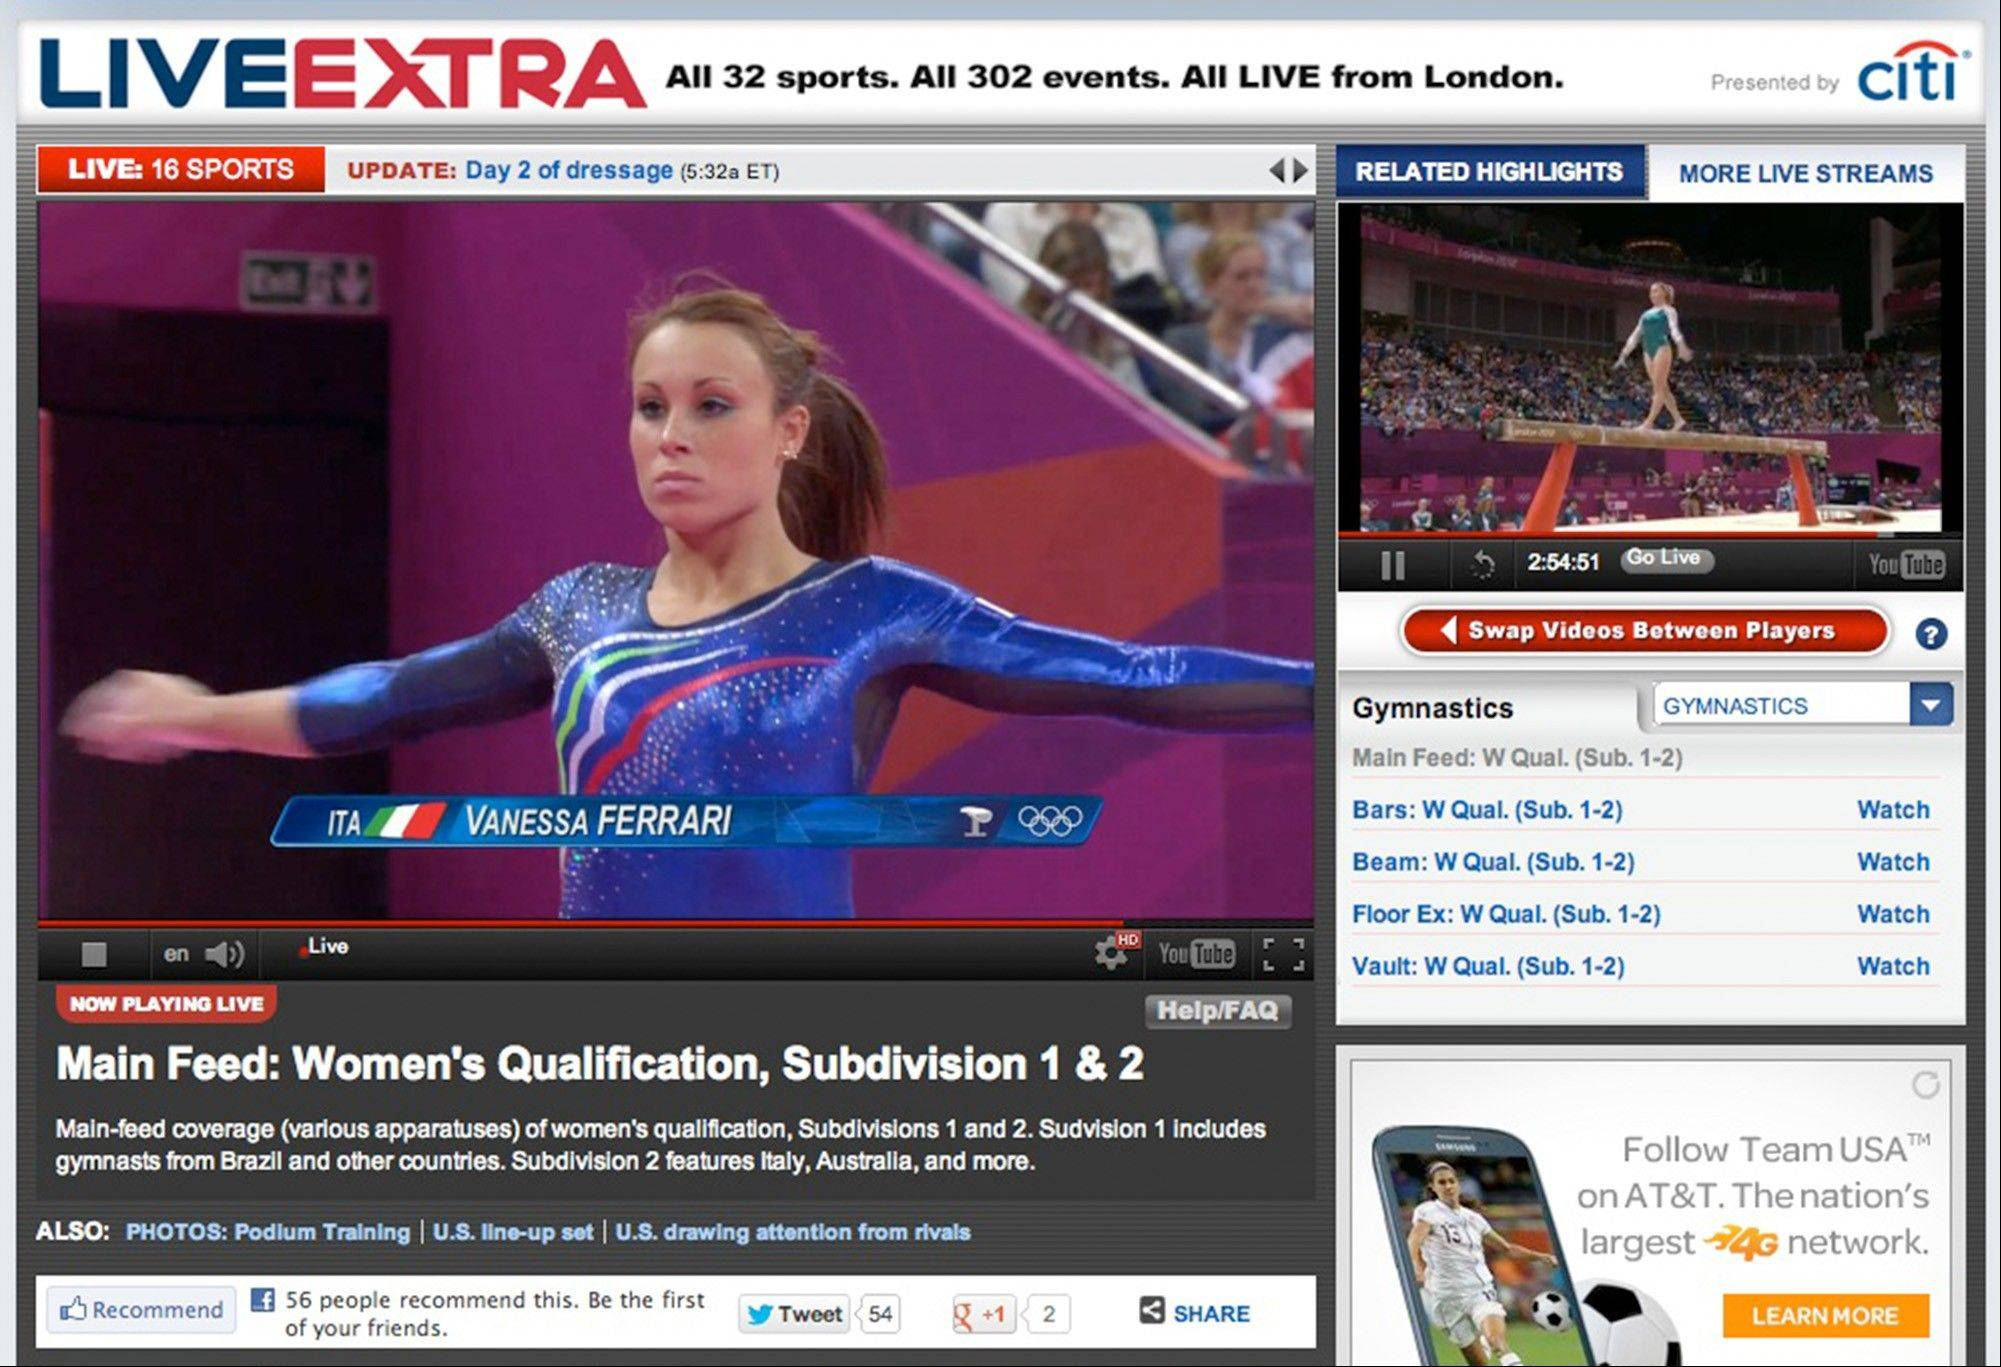 This image made from an NBC Sports website shows some of the live coverage they have offered. For the first time, NBC Sports is showing all competition and medal ceremonies live over the Internet in the U.S.